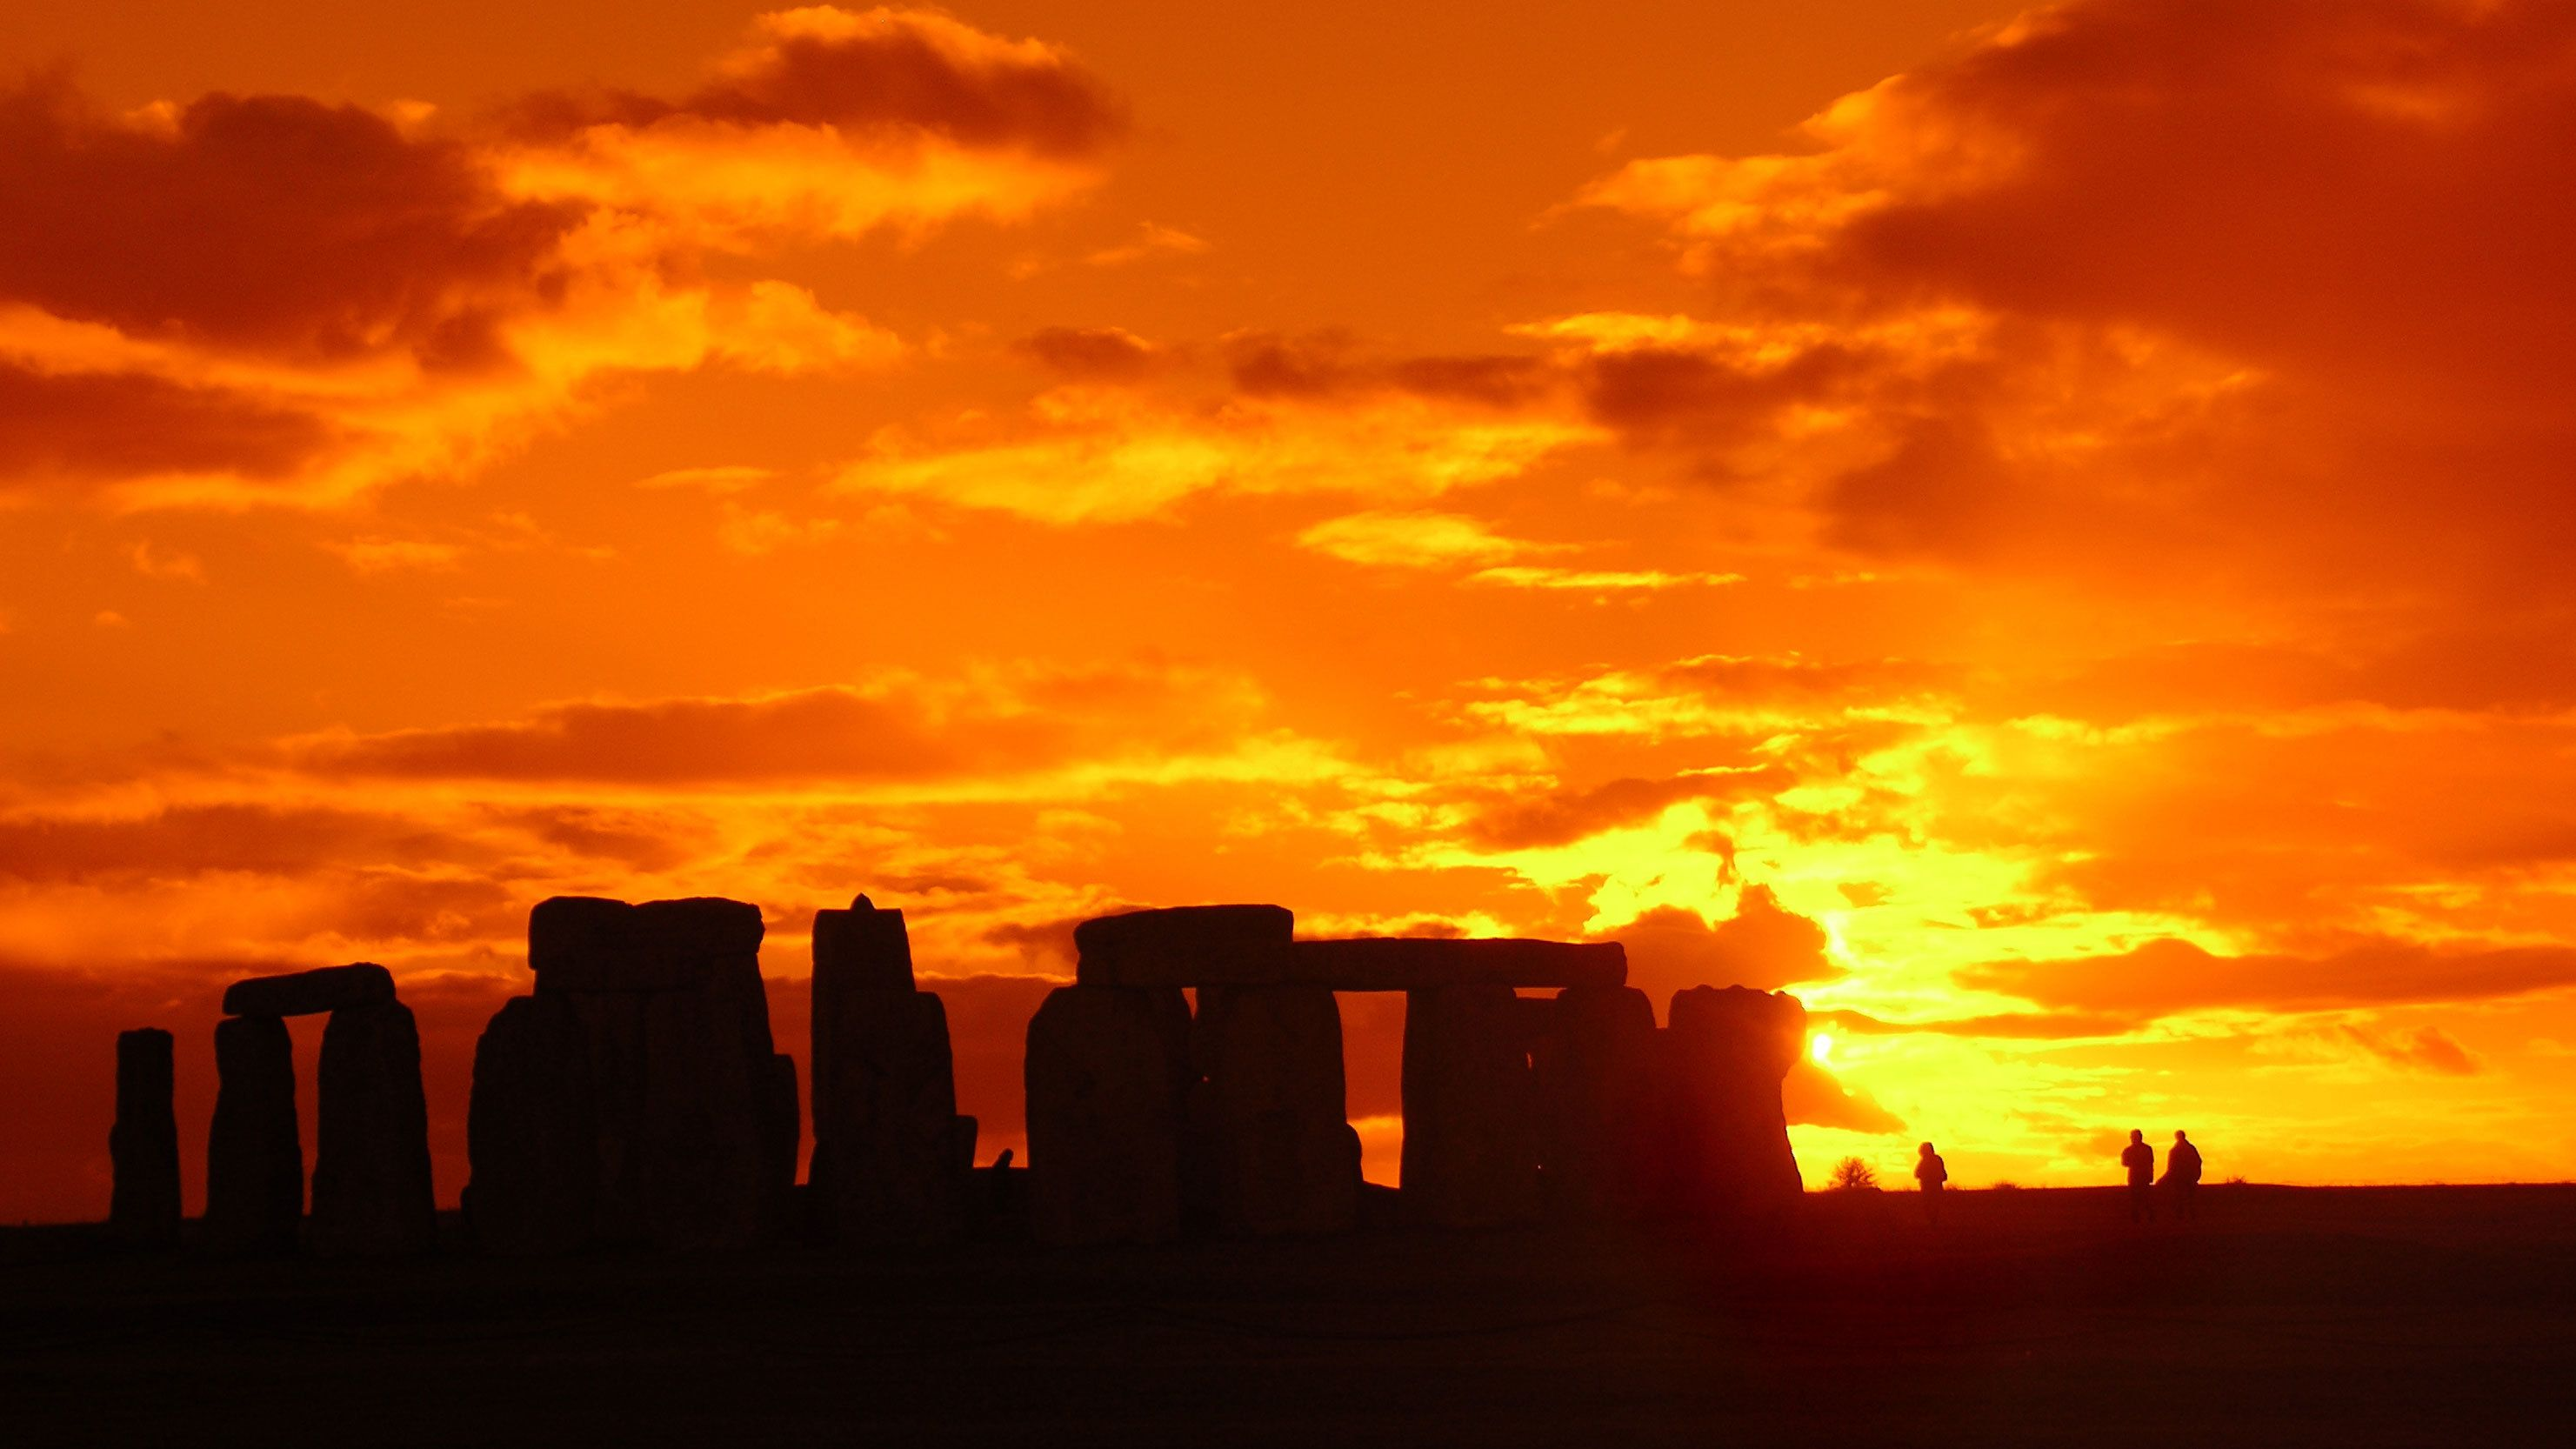 England in 1 Day: Stonehenge, Bath, Stratford-upon-Avon & the Cotswolds